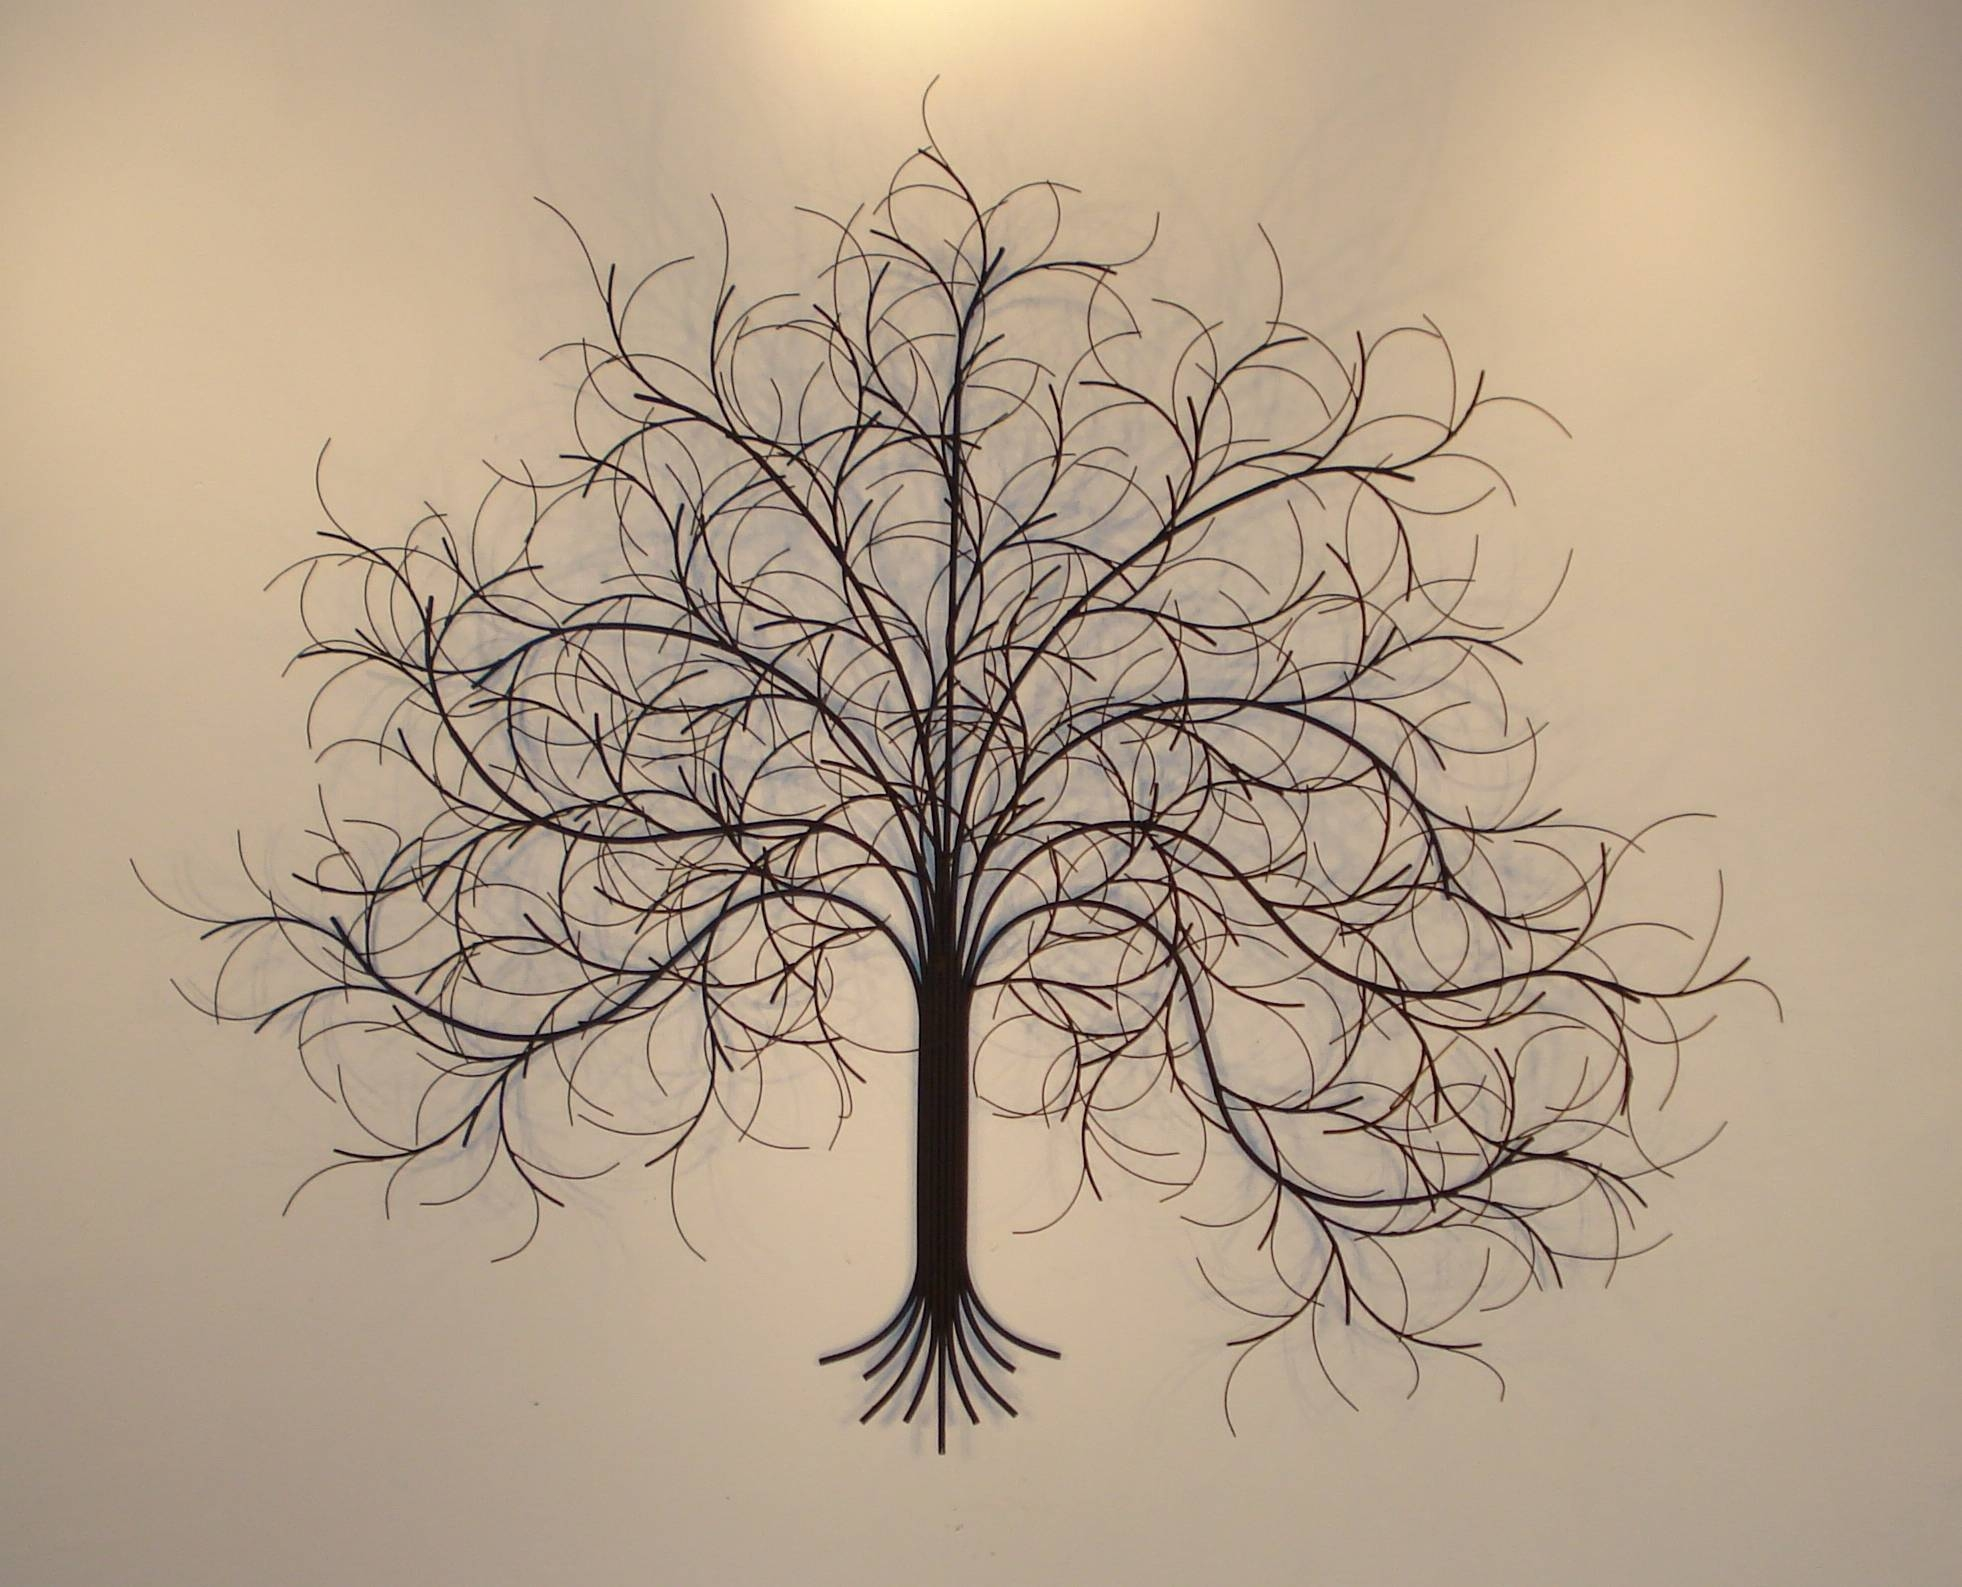 March Tree Metal Wall Art – Metal Sculpture And Wall Decor With Regard To Best And Newest Trees Metal Wall Art (View 6 of 20)